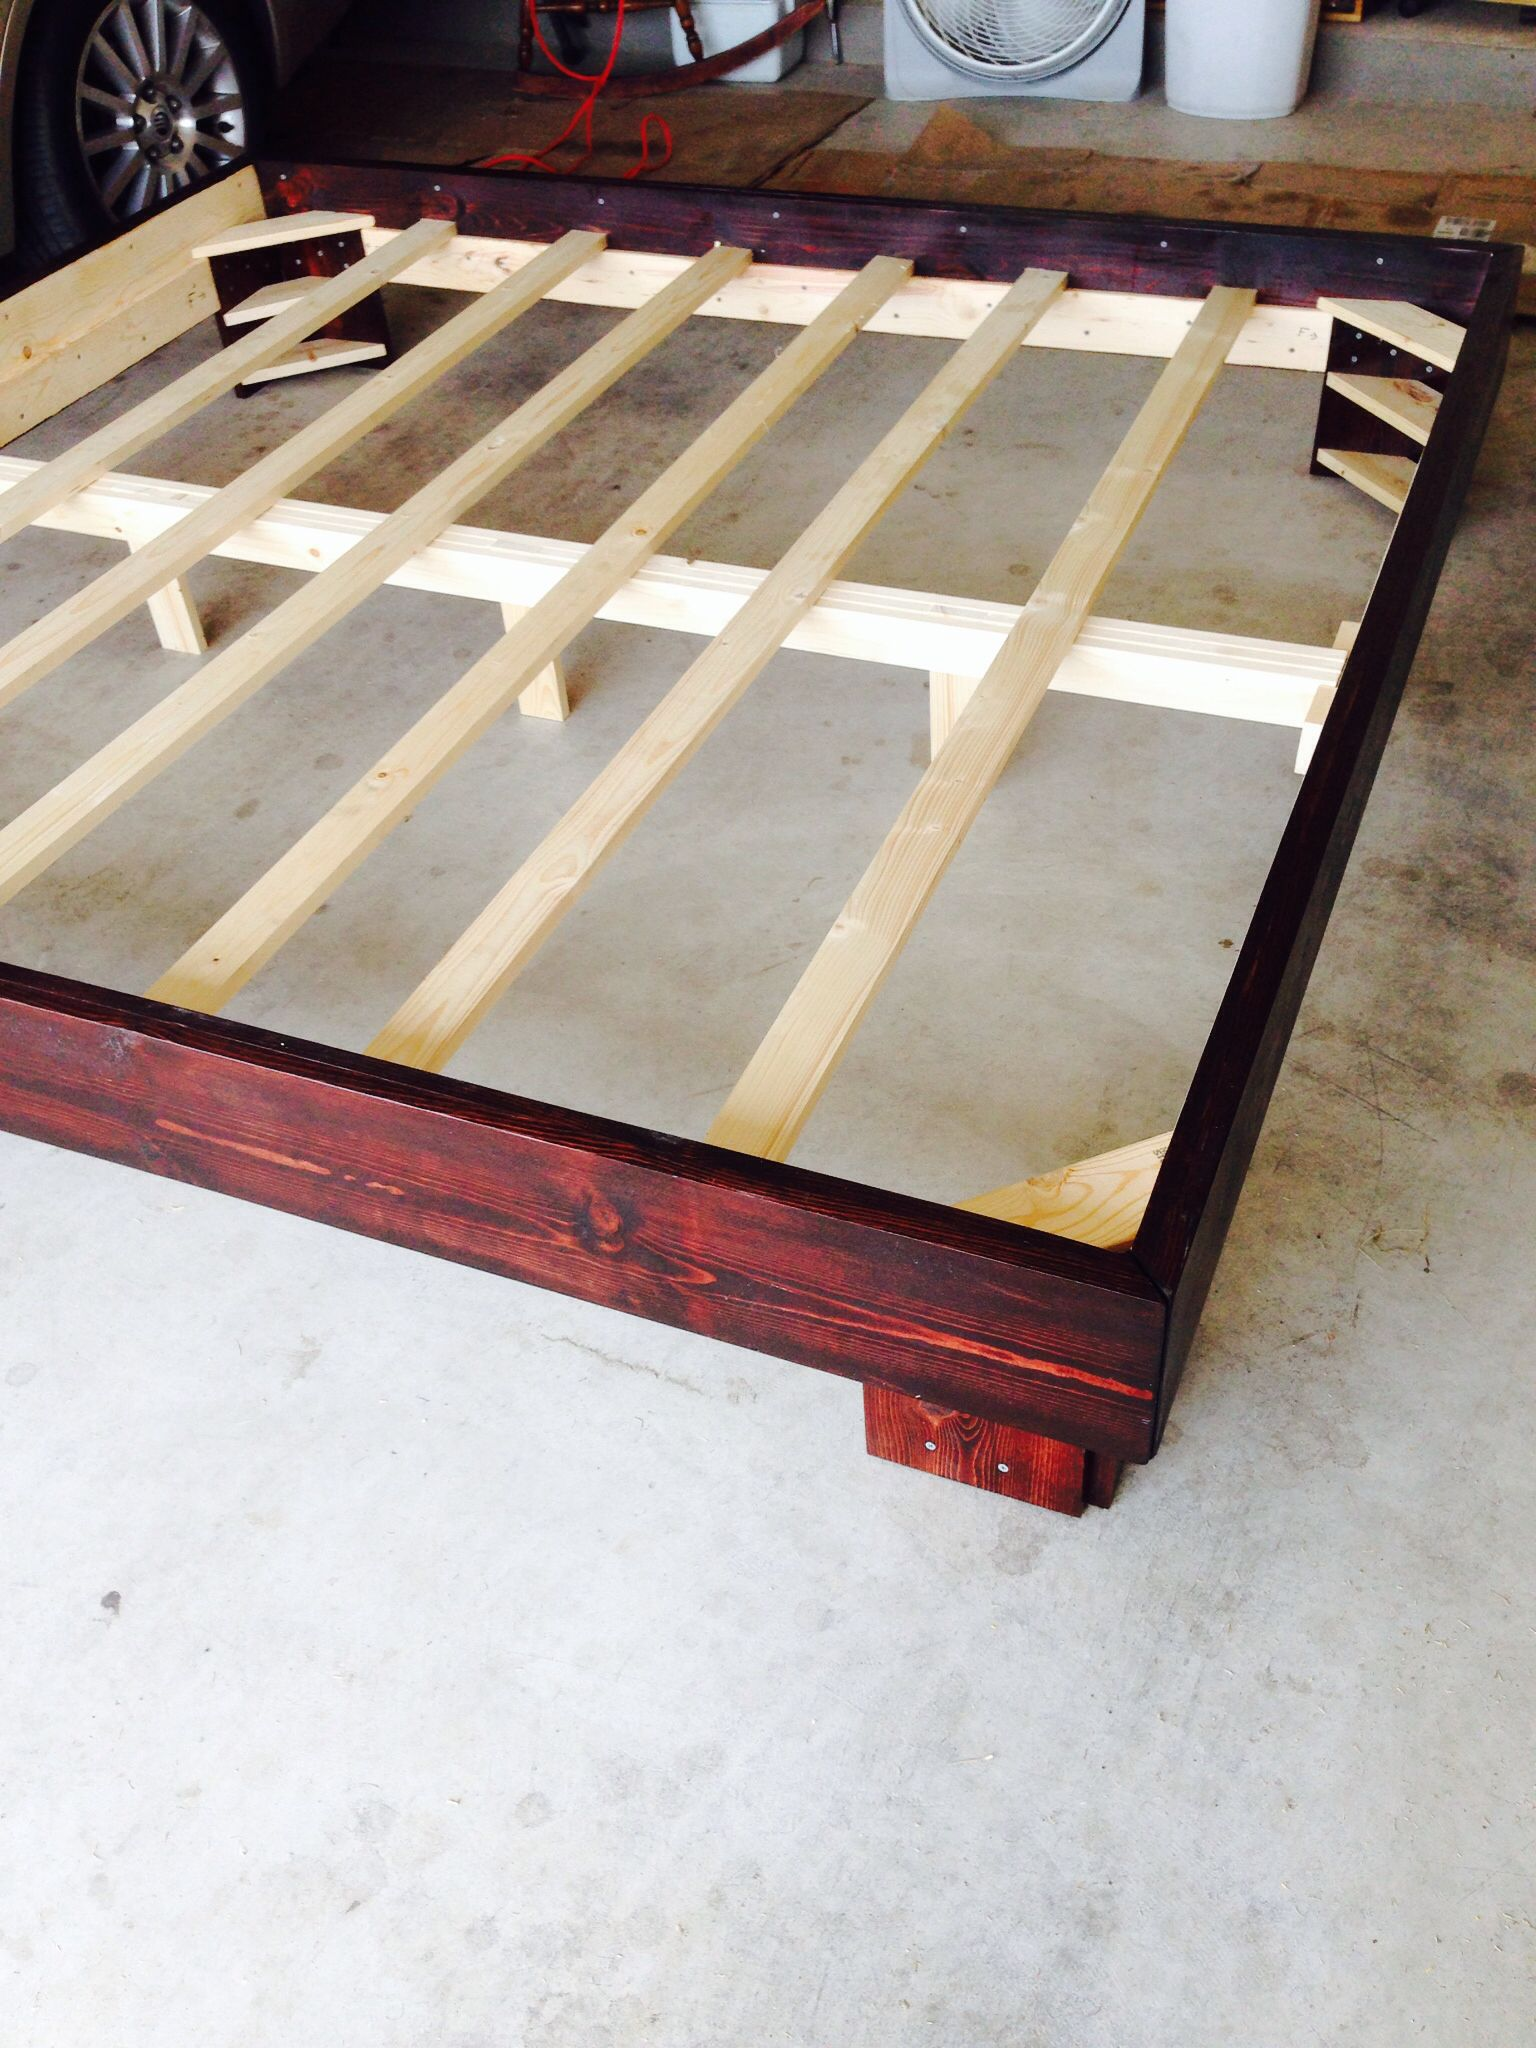 King size bed frame in Red Mahogany stain. Built to order